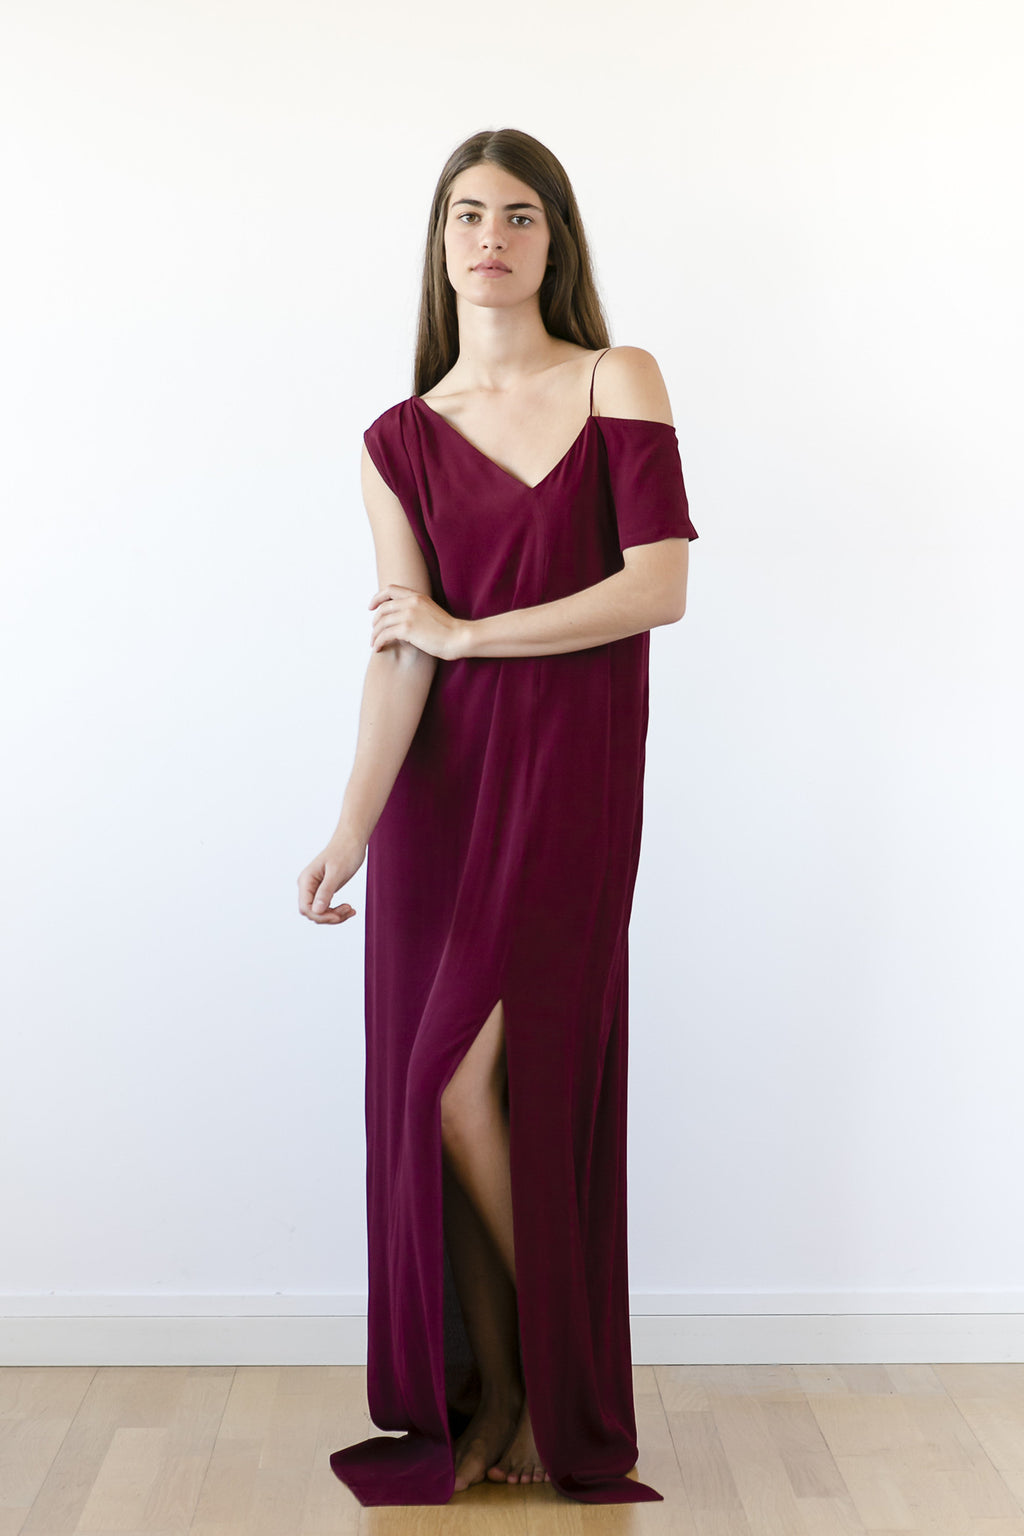 Filippa dress